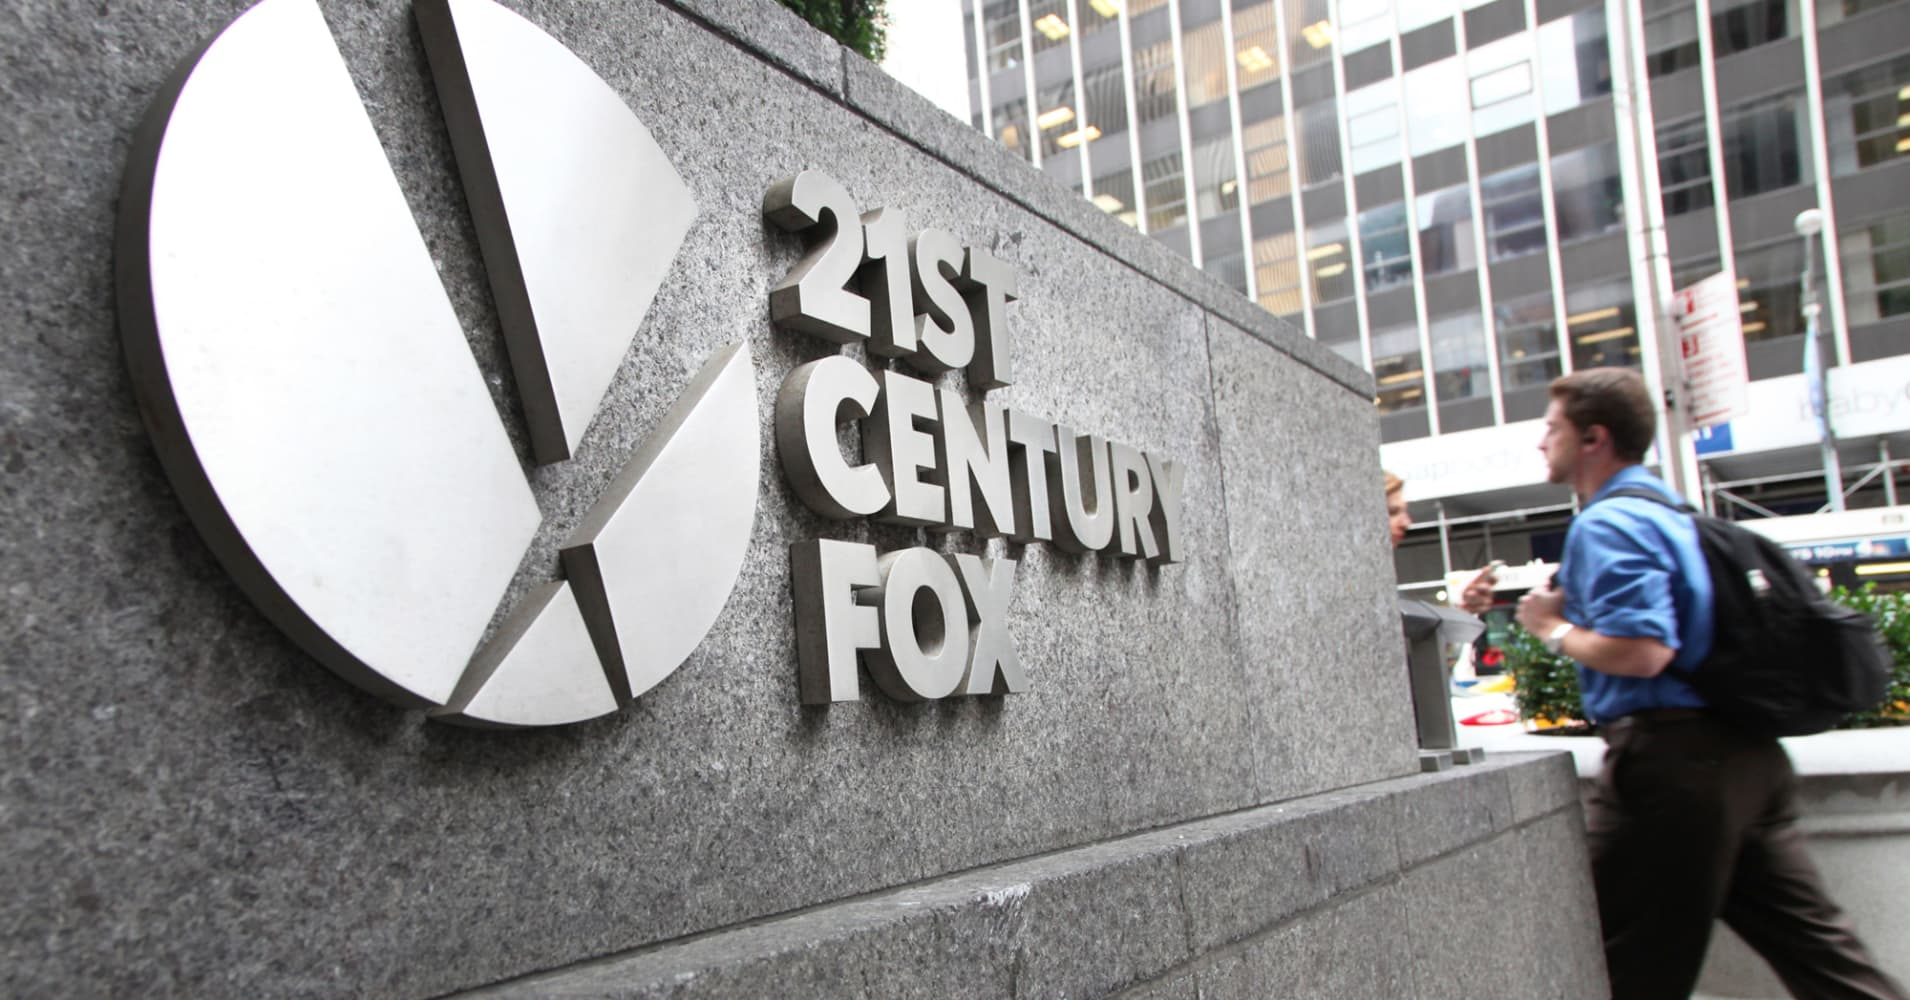 Disney, 21st Century Fox talks have gotten a 2nd wind, deal still possible: Report